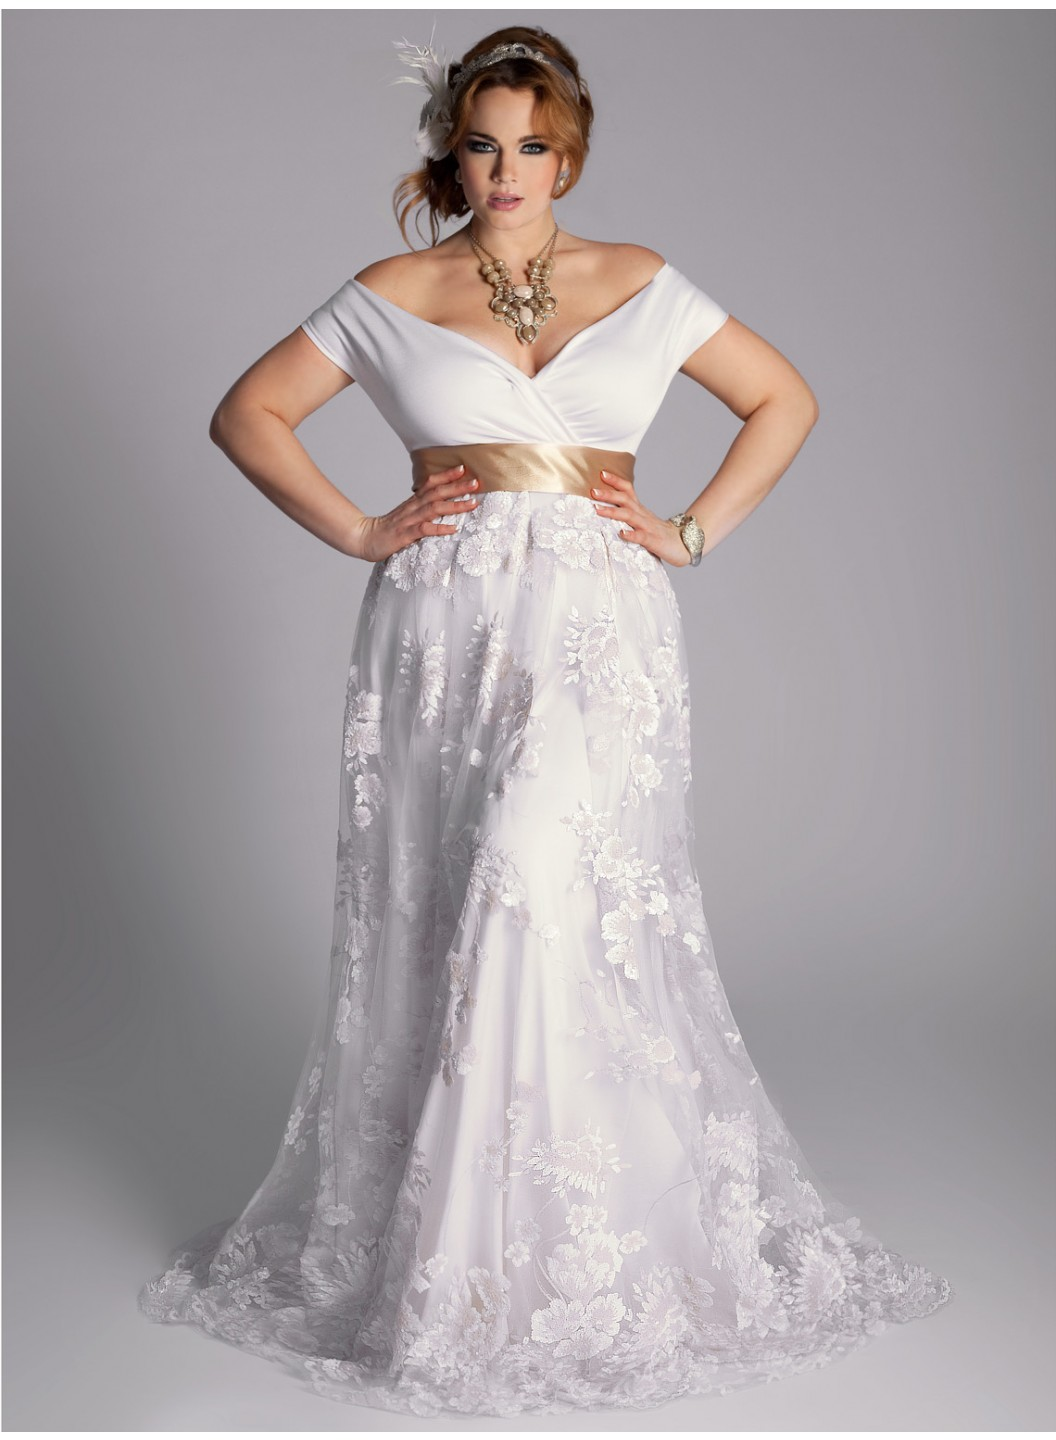 Vintage Wedding Dress Xs : Plus size wedding dresses dressed up girl